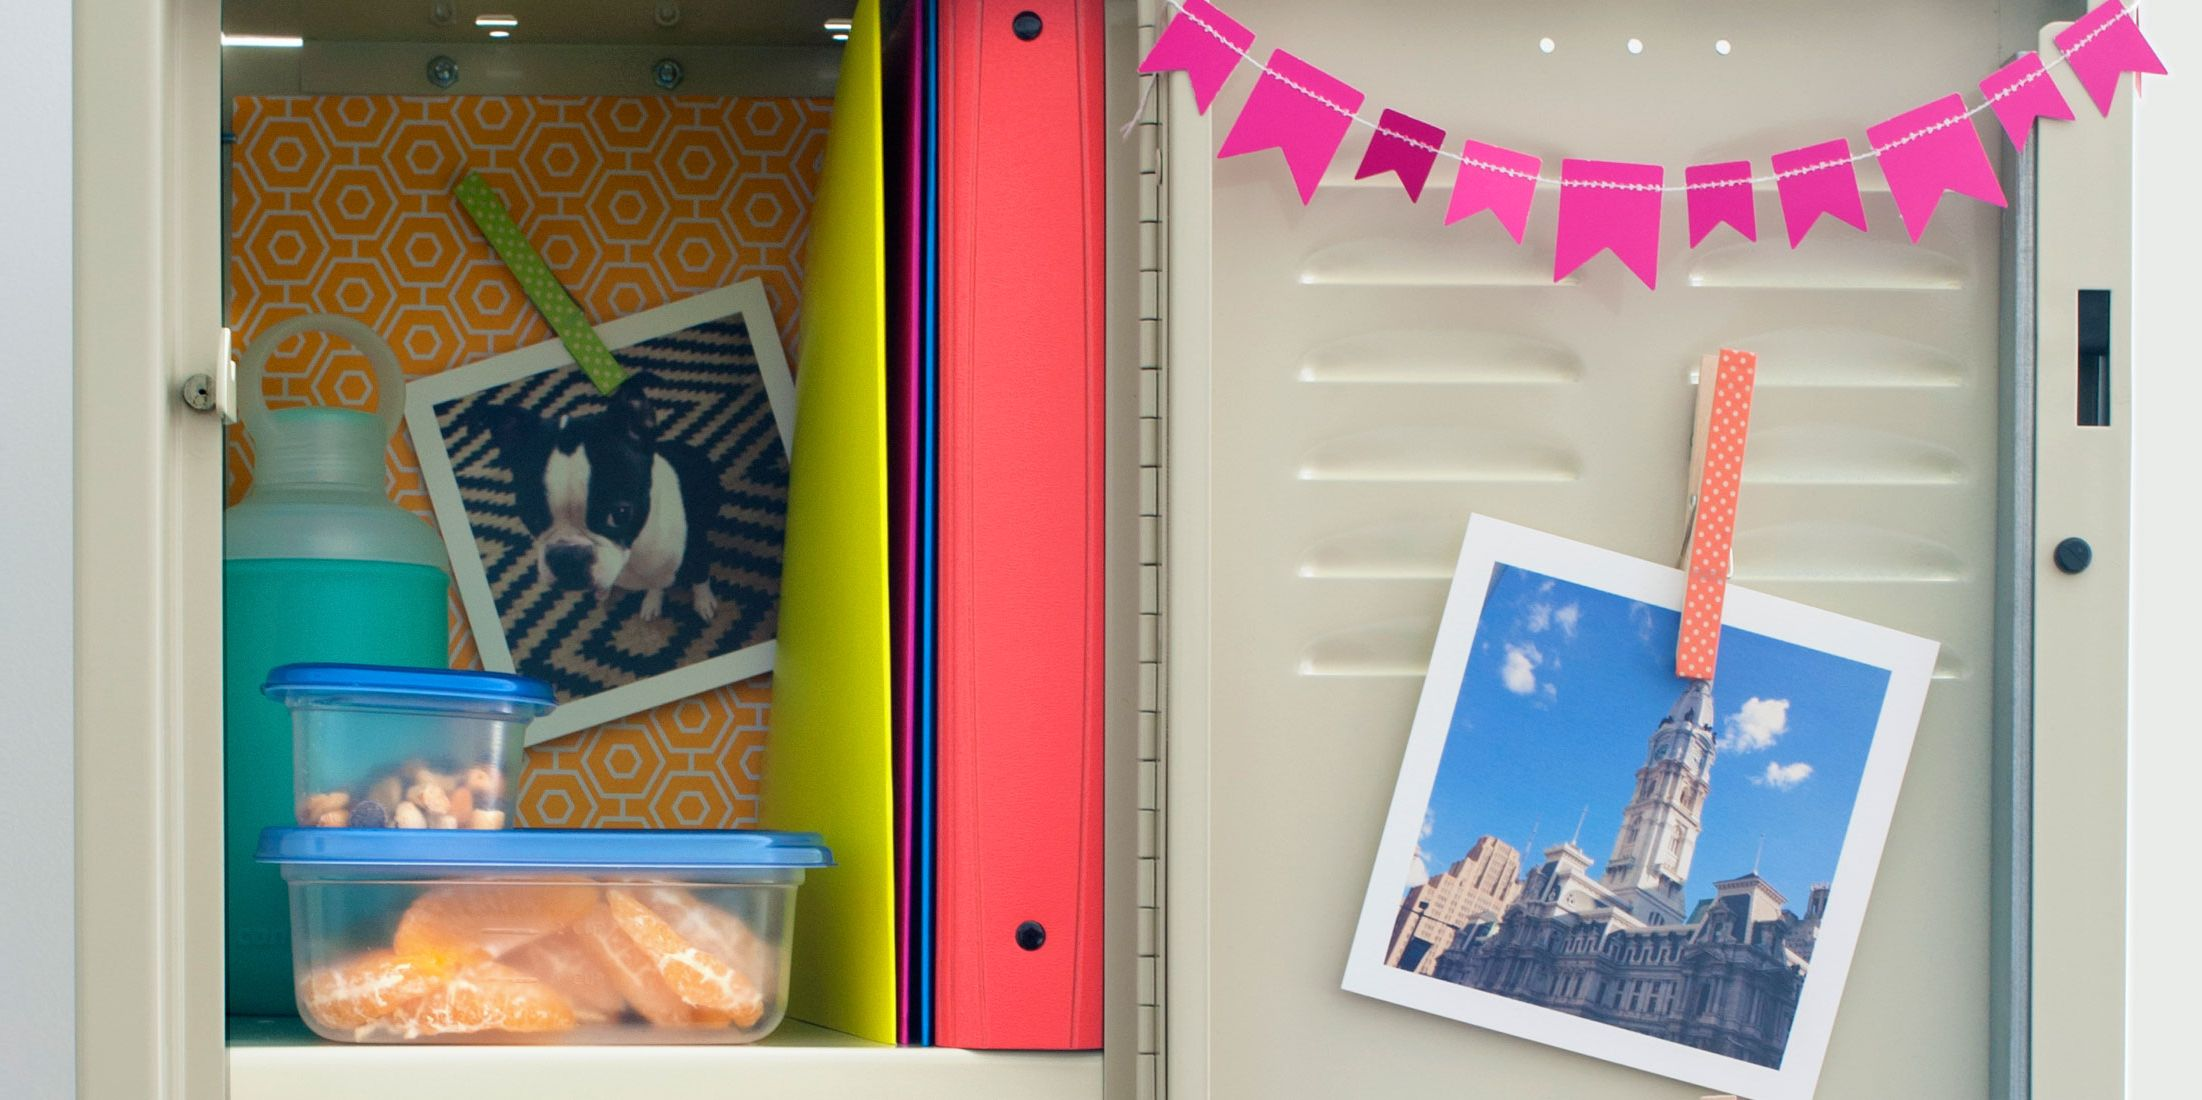 10 Best DIY Locker Ideas in 2018 DIY Locker Design Ideas